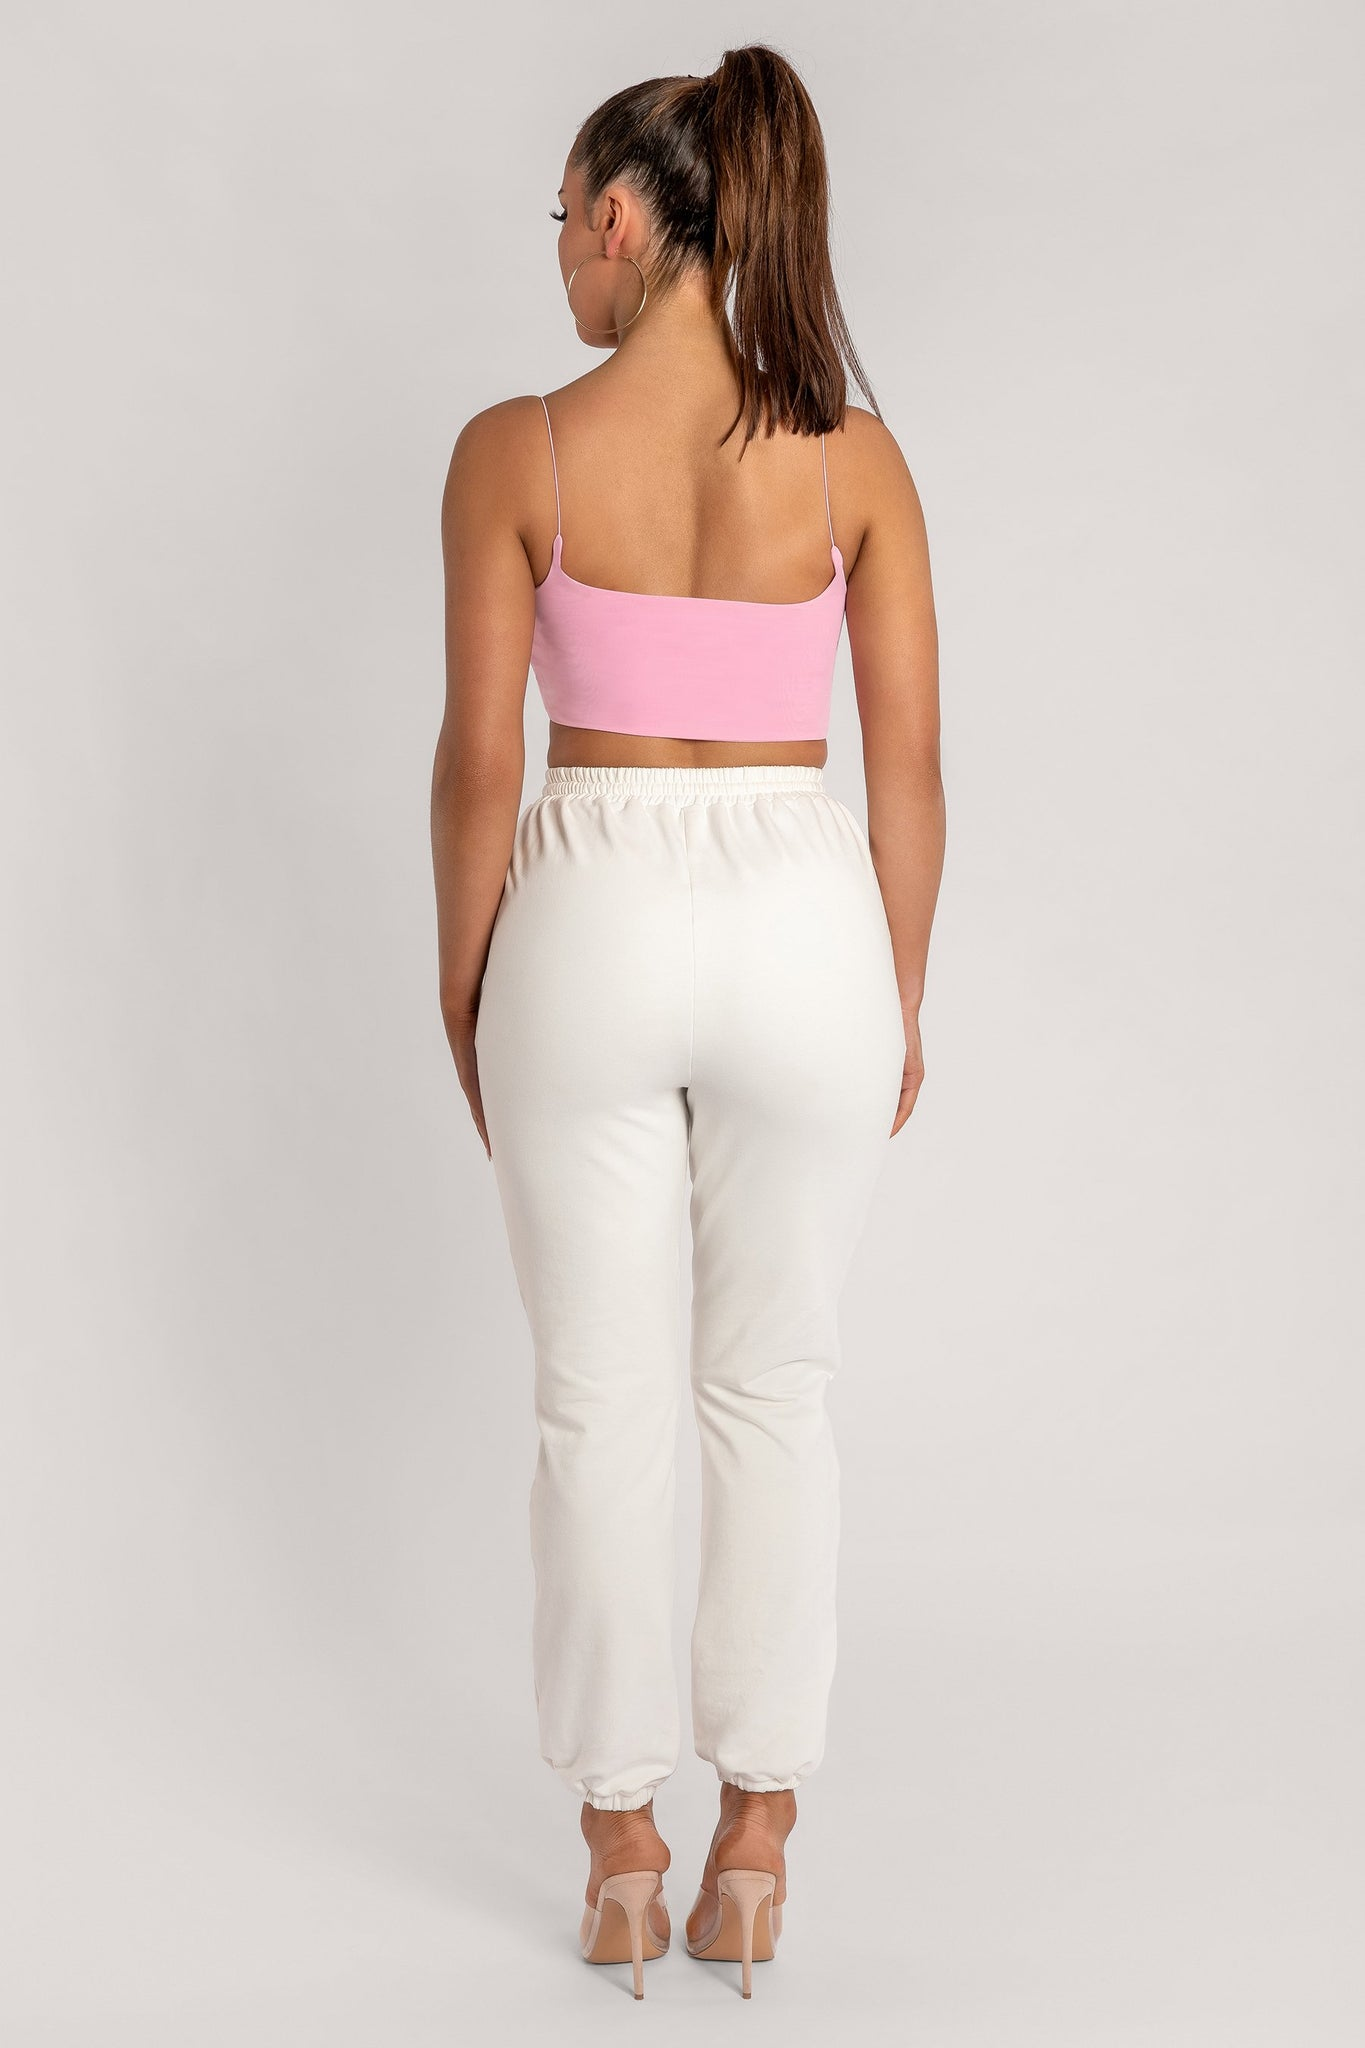 Kaiya Thin Strap Scoop Neck Crop Top - Pink - MESHKI